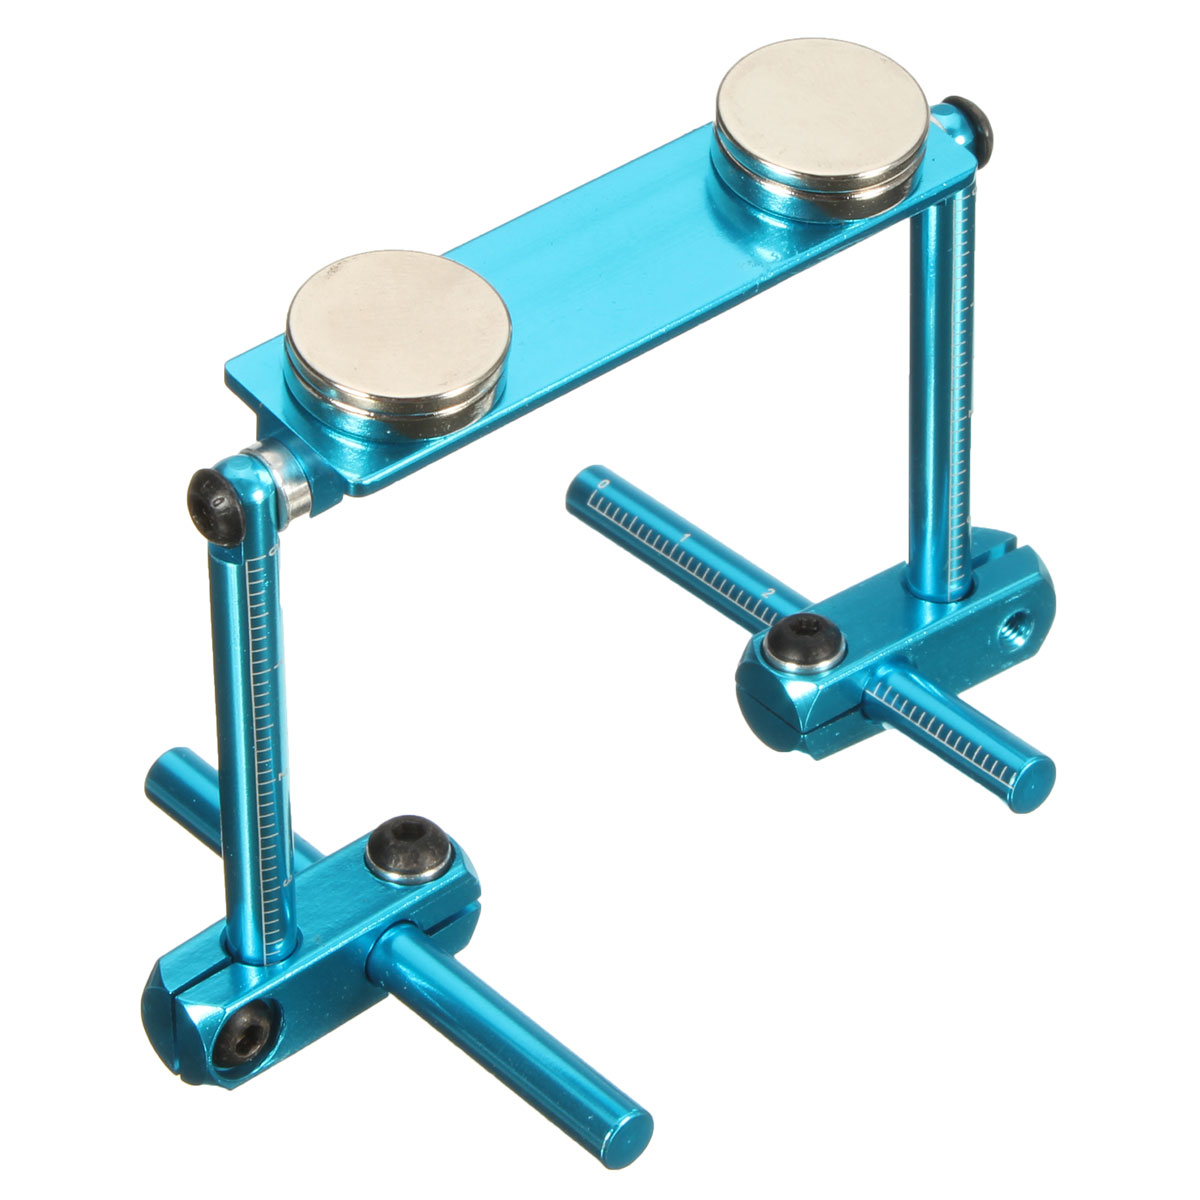 Alloy Invisible Stealth Body Post Strong Magnet For RC 1:10 Model Car Blue